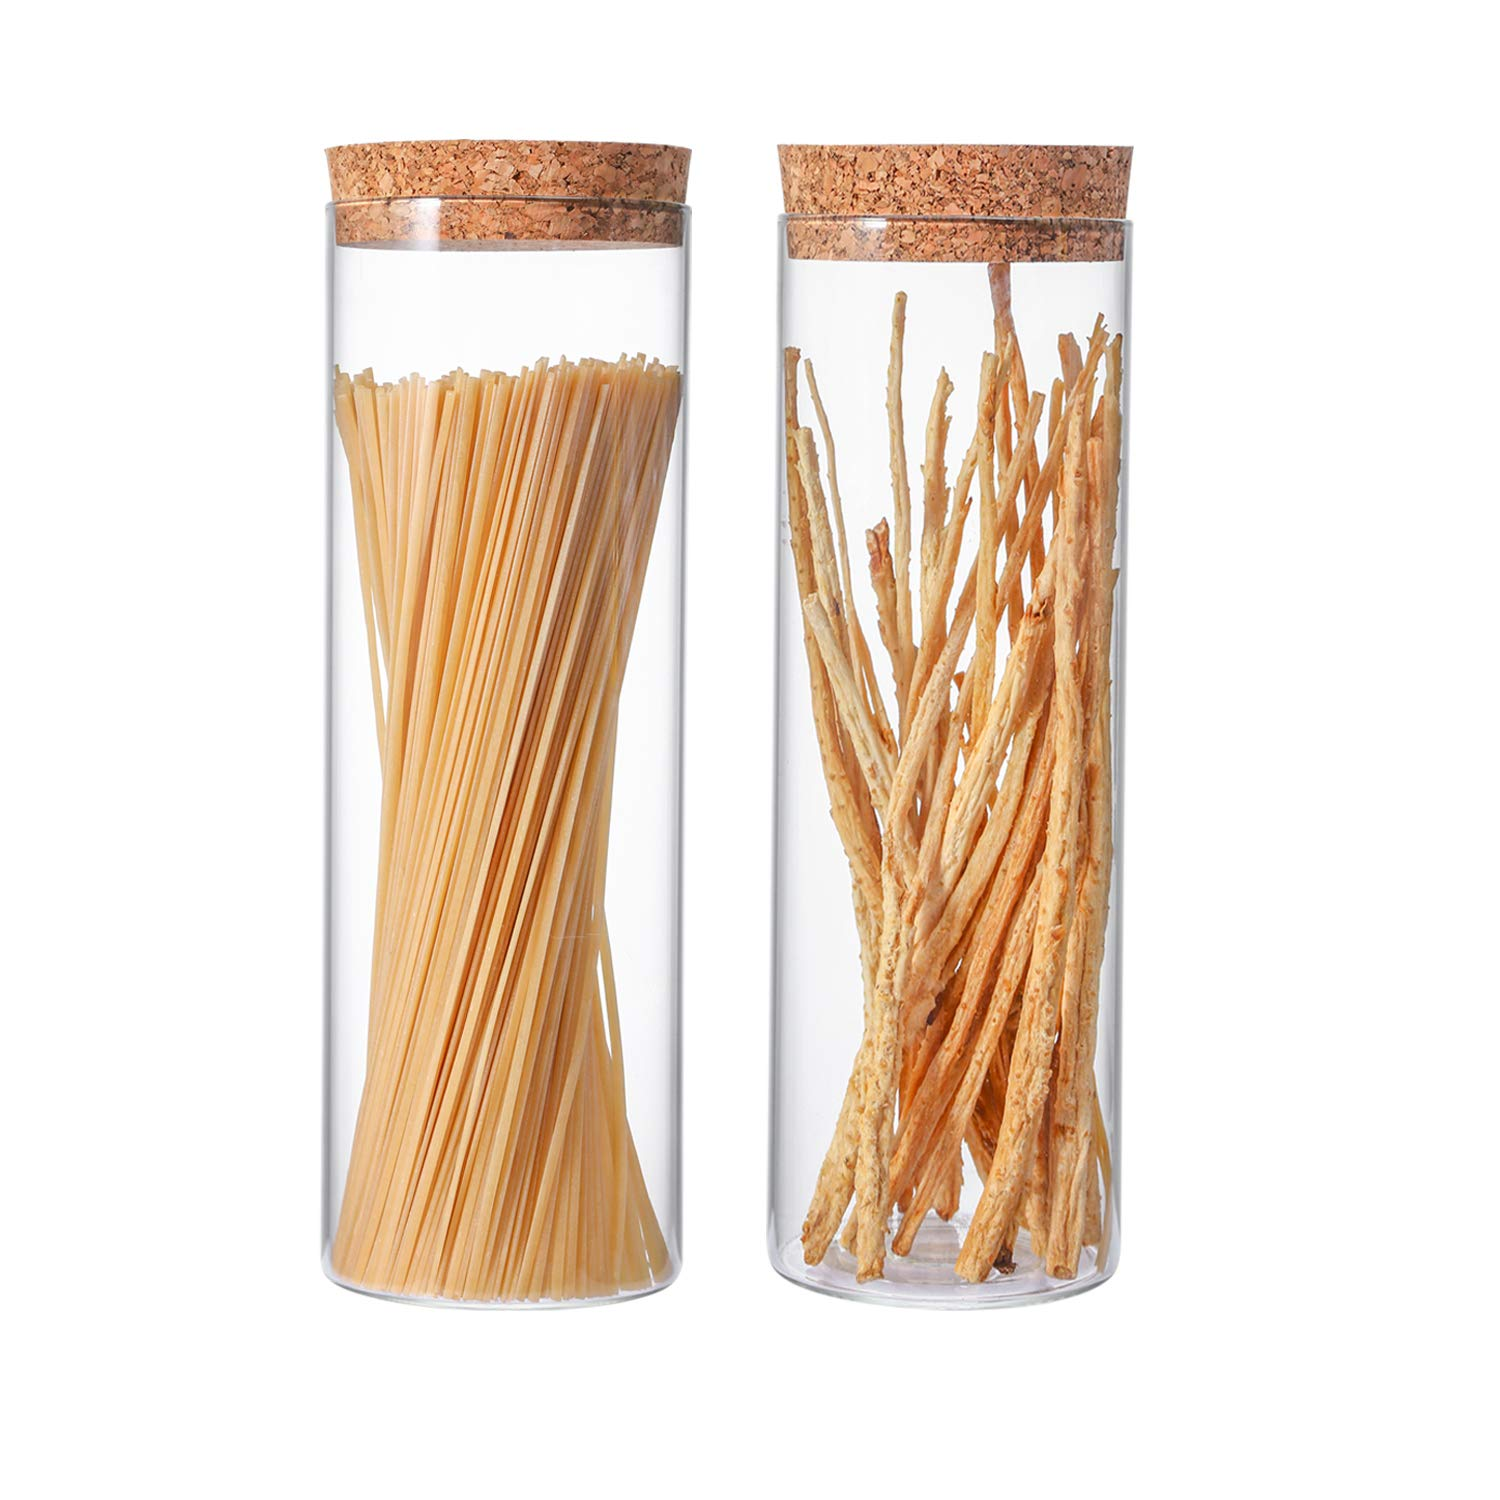 Anleolife Glass Pasta Jars 2-Piece Set, Spaghetti Containers Food Storage Canister for Kitchen, Bonus with Chalkboard Labels (1880ml/66oz)